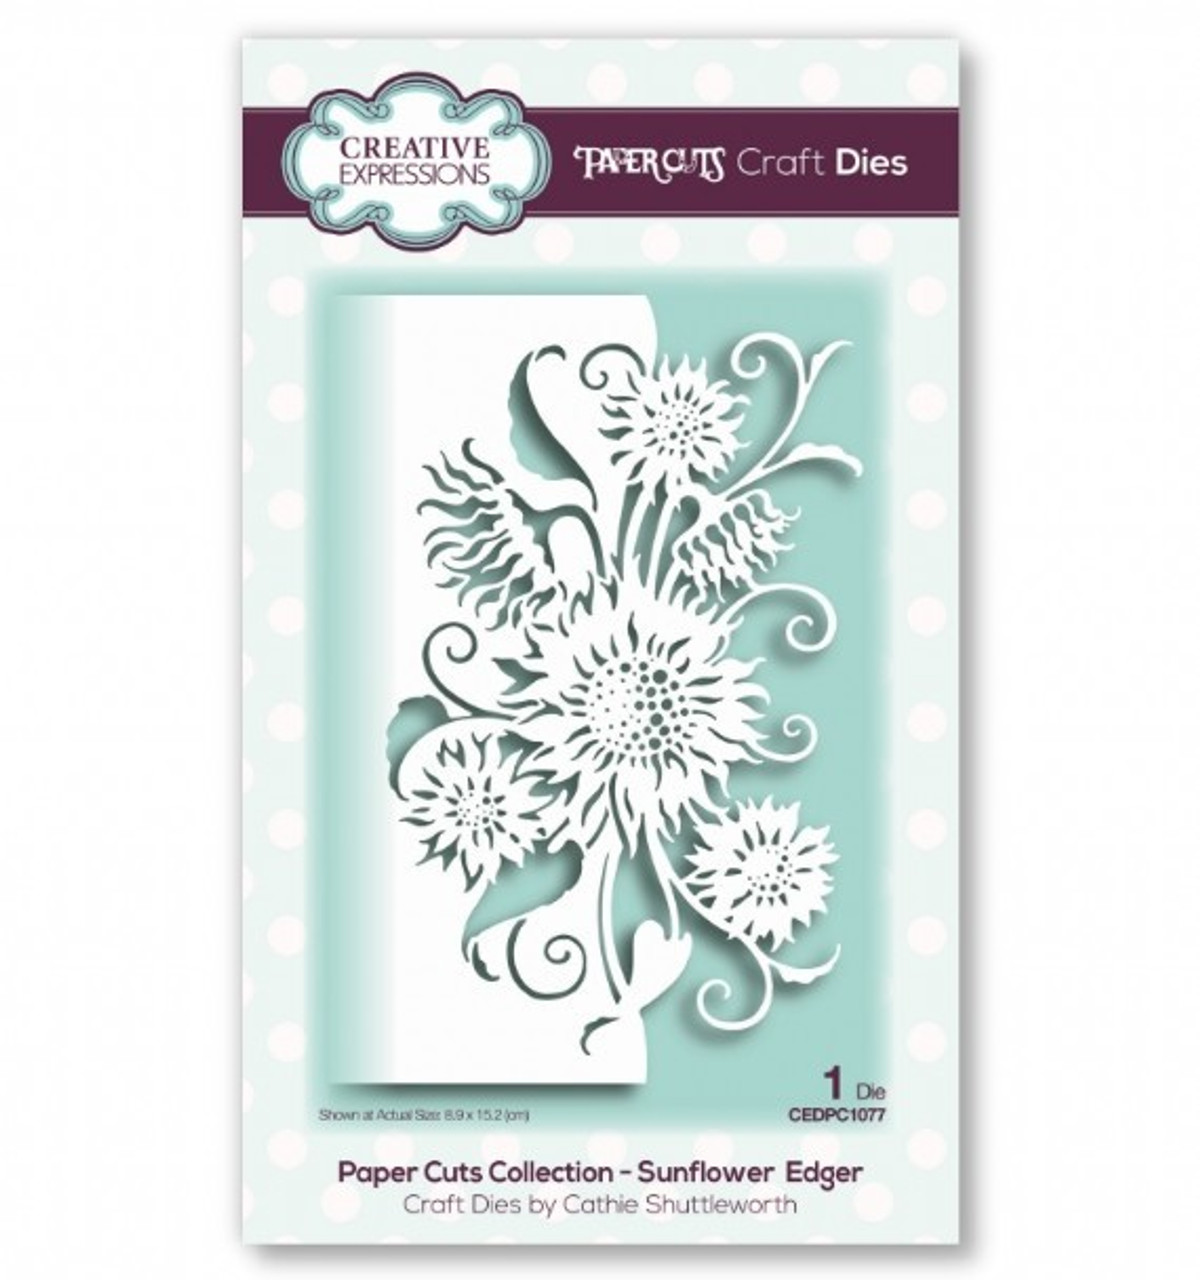 Creative Expressions Paper Cuts Collection - Sunflower Edger Craft Die CEDPC1077